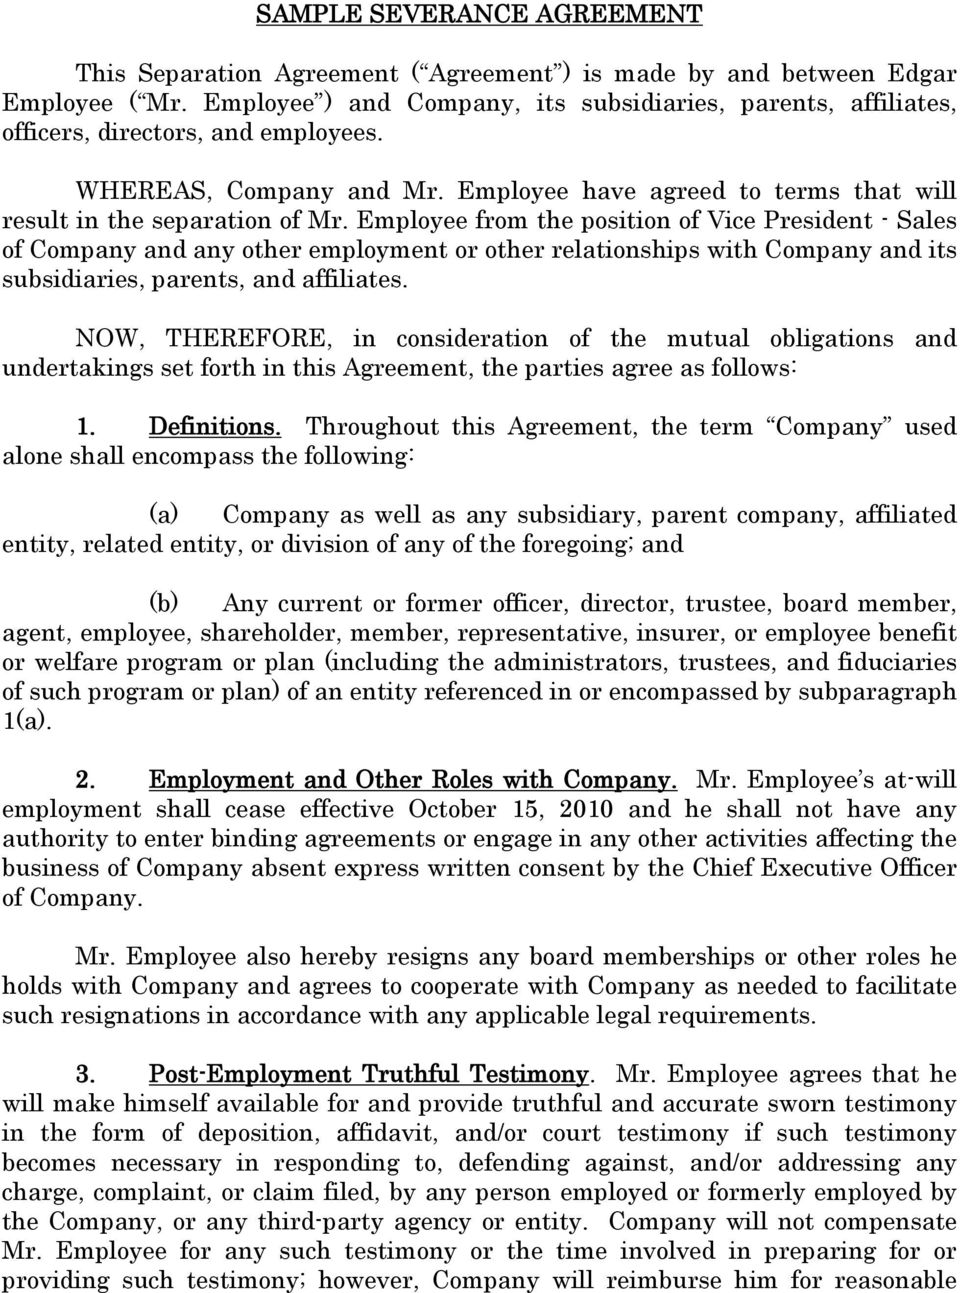 Employee from the position of Vice President - Sales of Company and any other employment or other relationships with Company and its subsidiaries, parents, and affiliates.